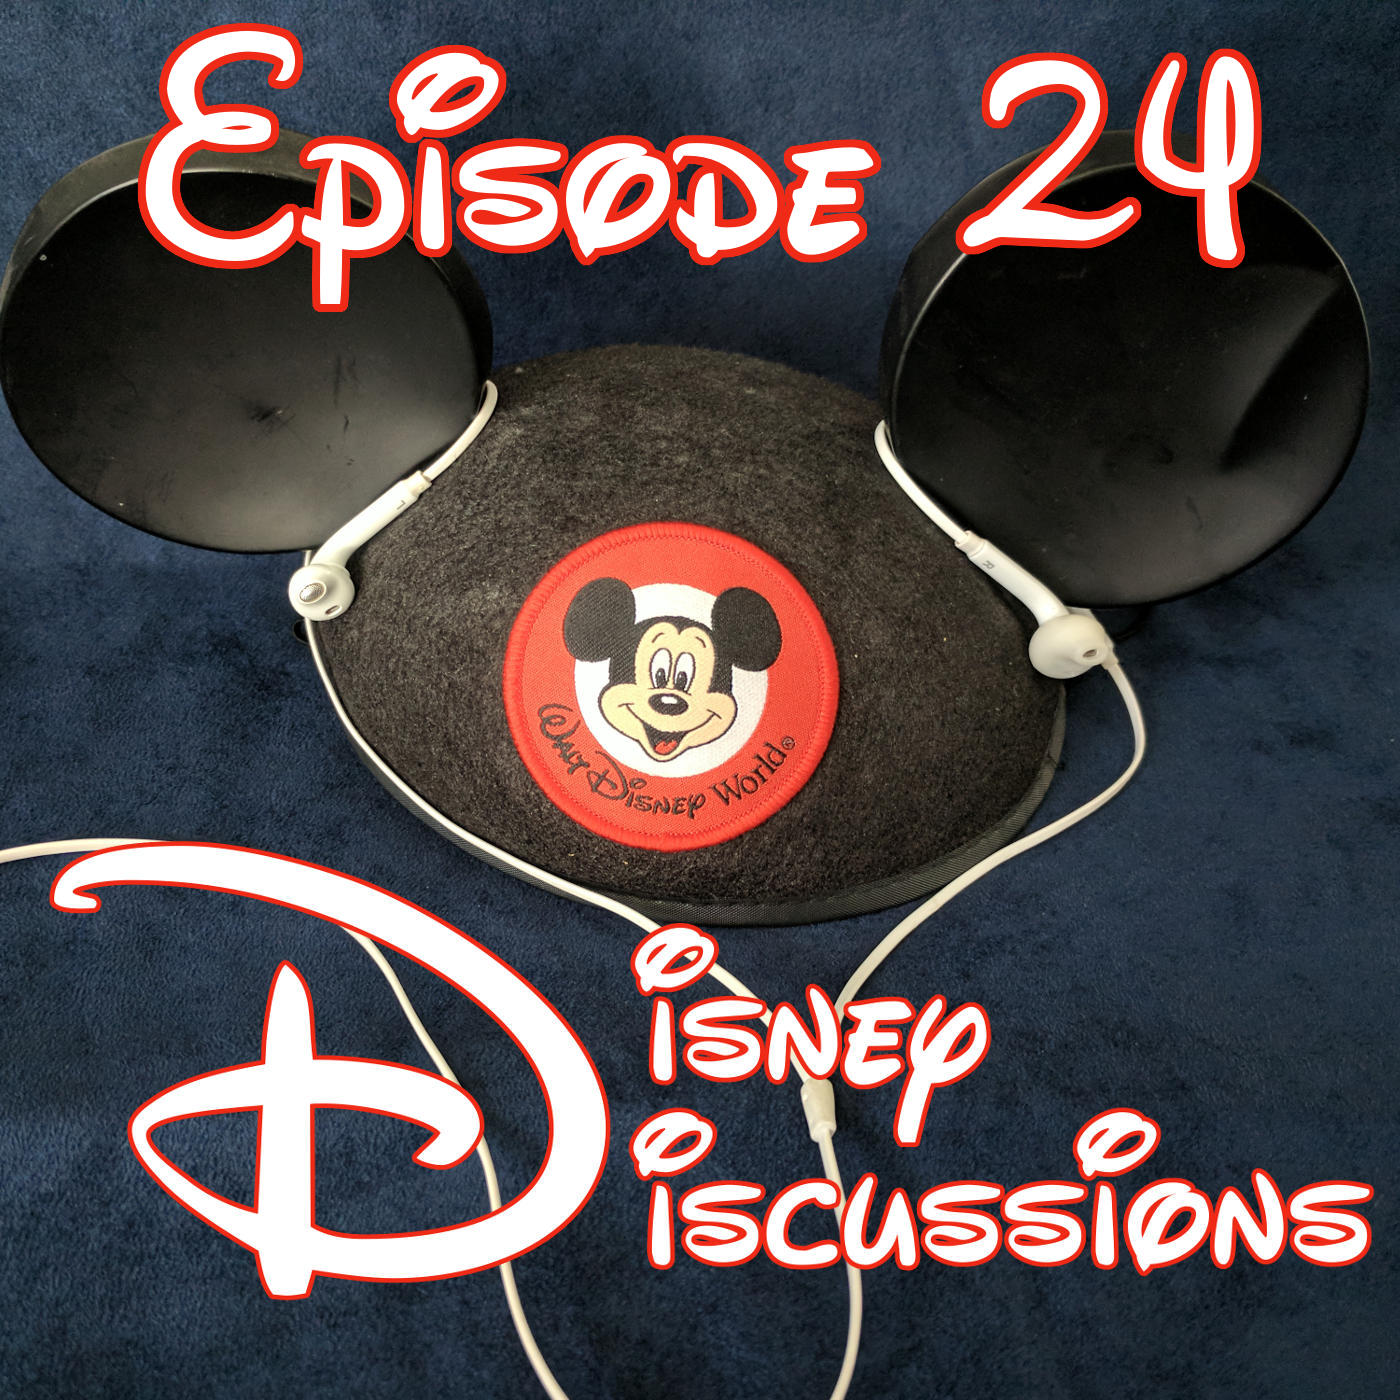 All news episode Pixar and Incredible events this summer, First look at the Star Wars Millennium Falcon ride, and more! - Disney Discussions